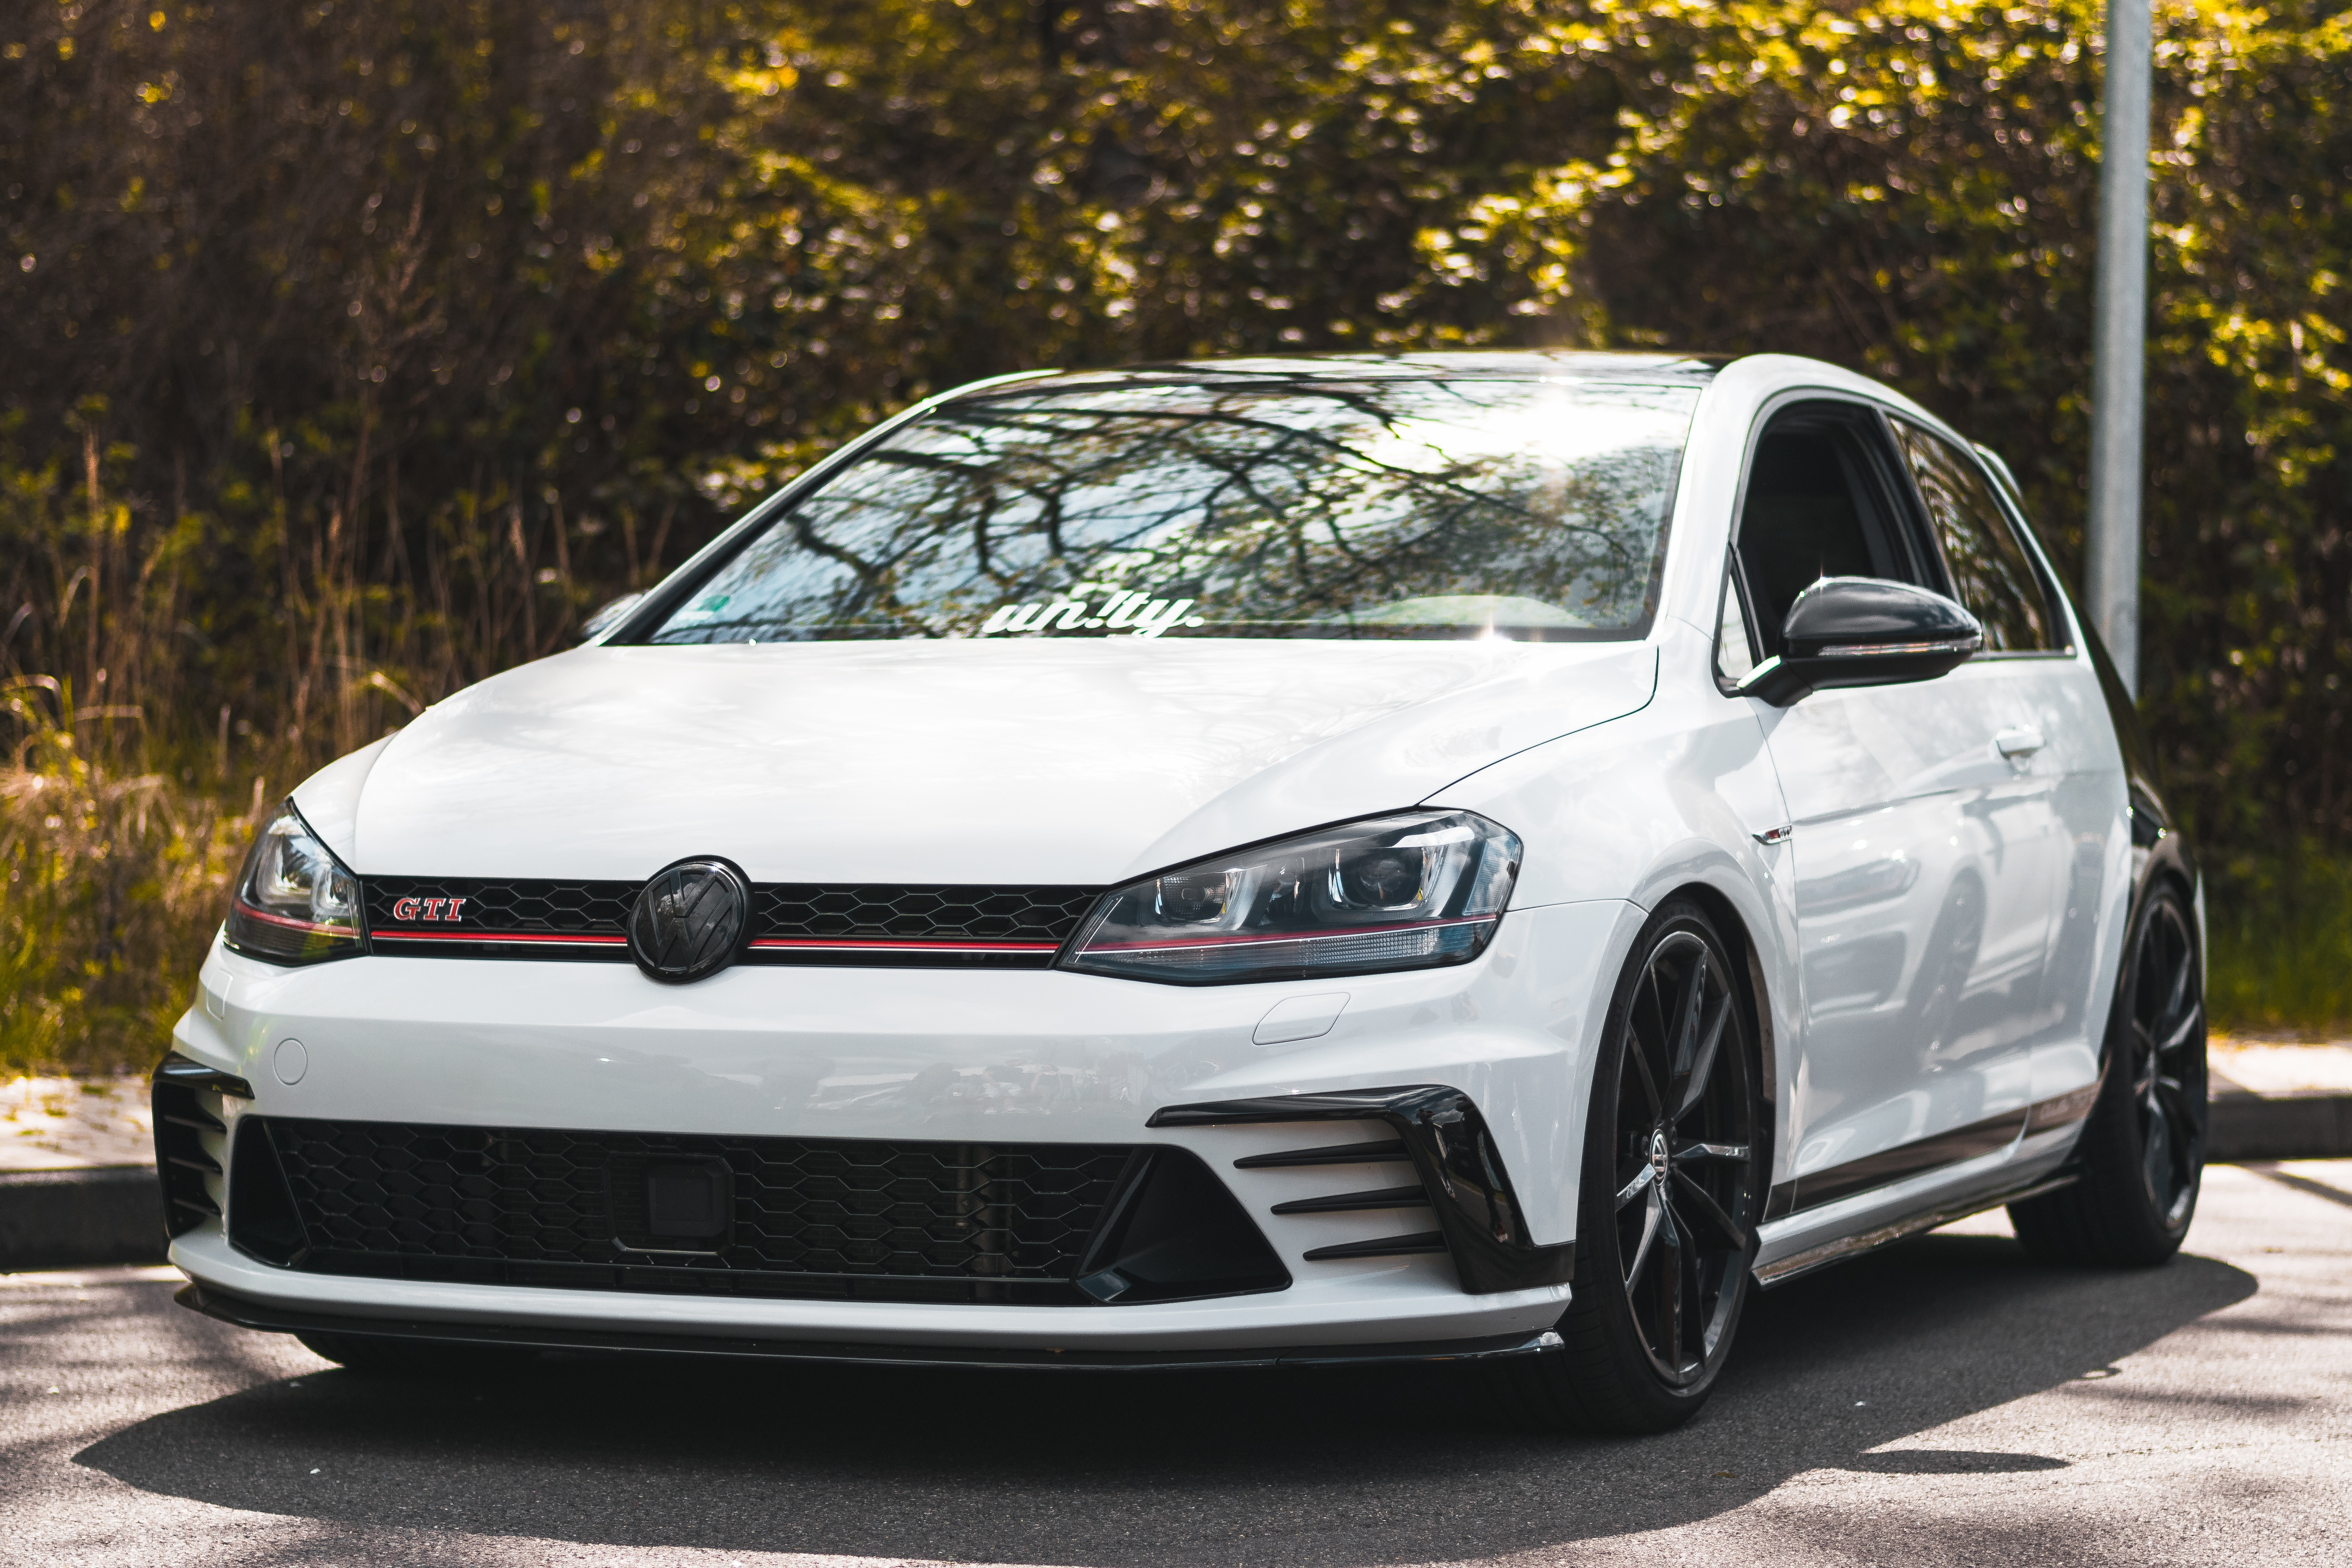 124255 download wallpaper Volkswagen, Cars, Car, Side View screensavers and pictures for free